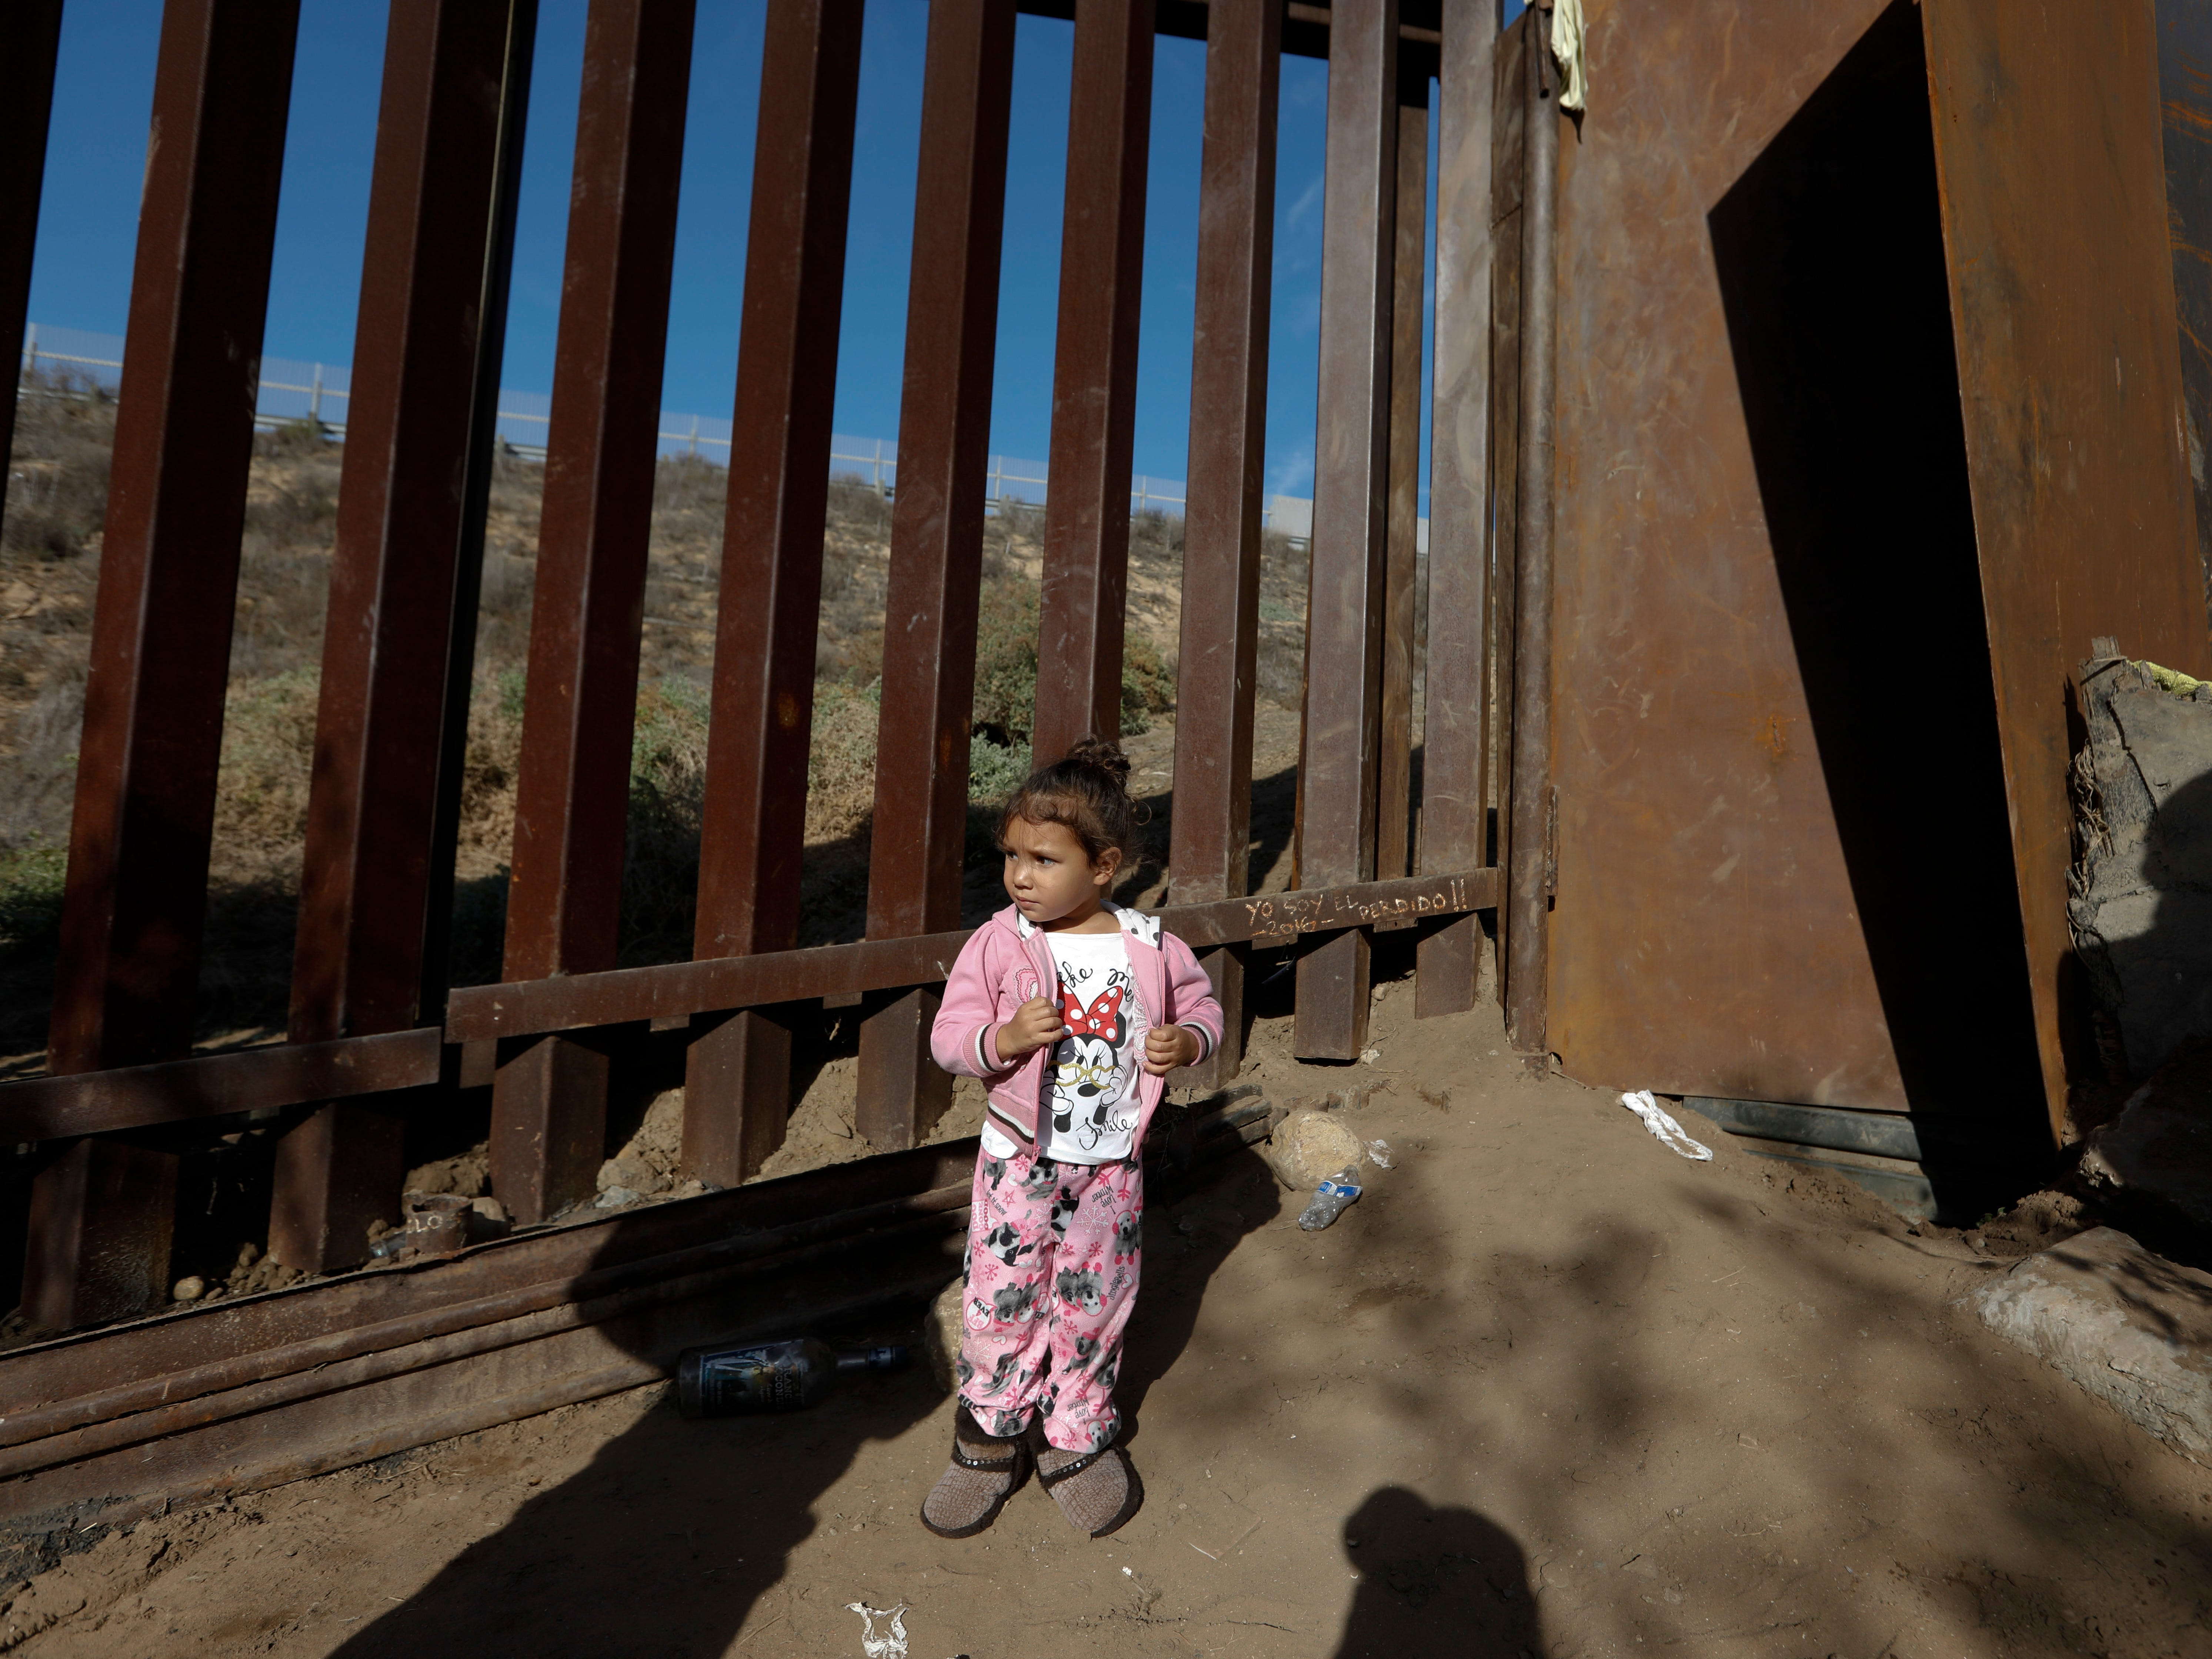 Opinion: Keep children at border from trauma